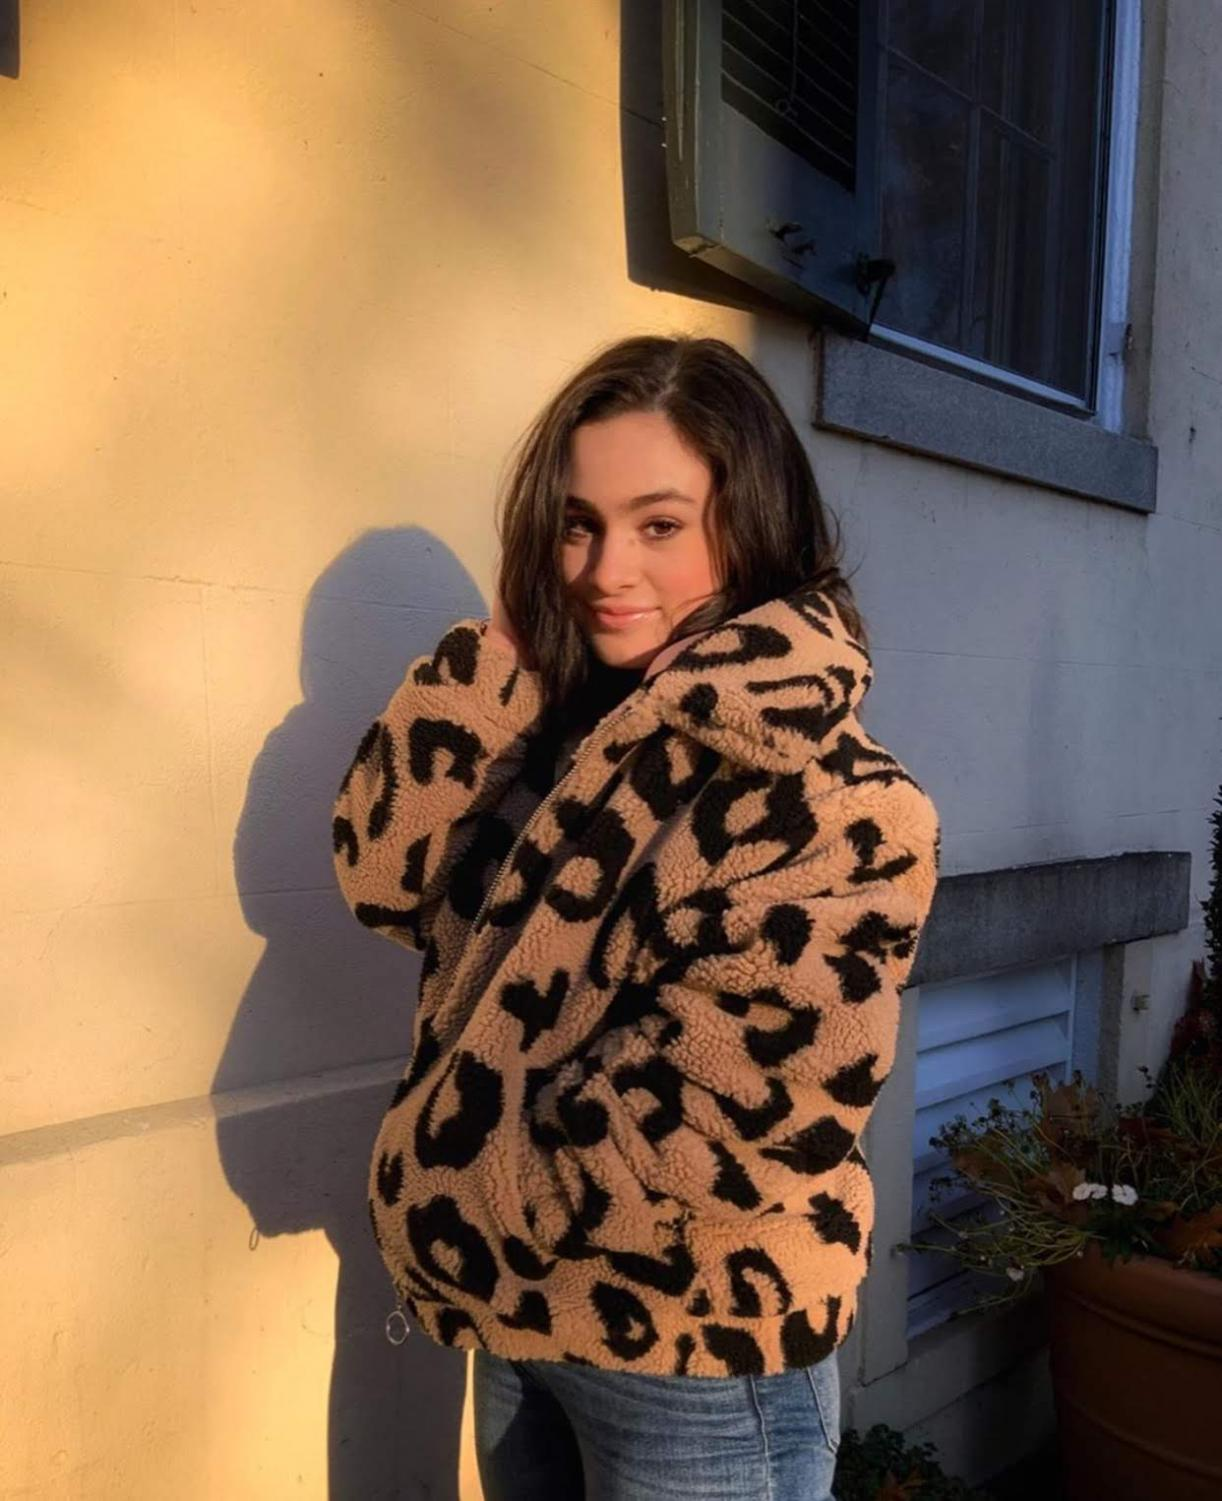 """Senior Sofia Urrutia styling a leopard-print teddy coat. Being a Pinterest-guru. Urrutia looks forward to making her outfits. """"I love how the jacket adds an element of chic style to any winter outfit while also keeping me super warm,"""" Urrutia said."""